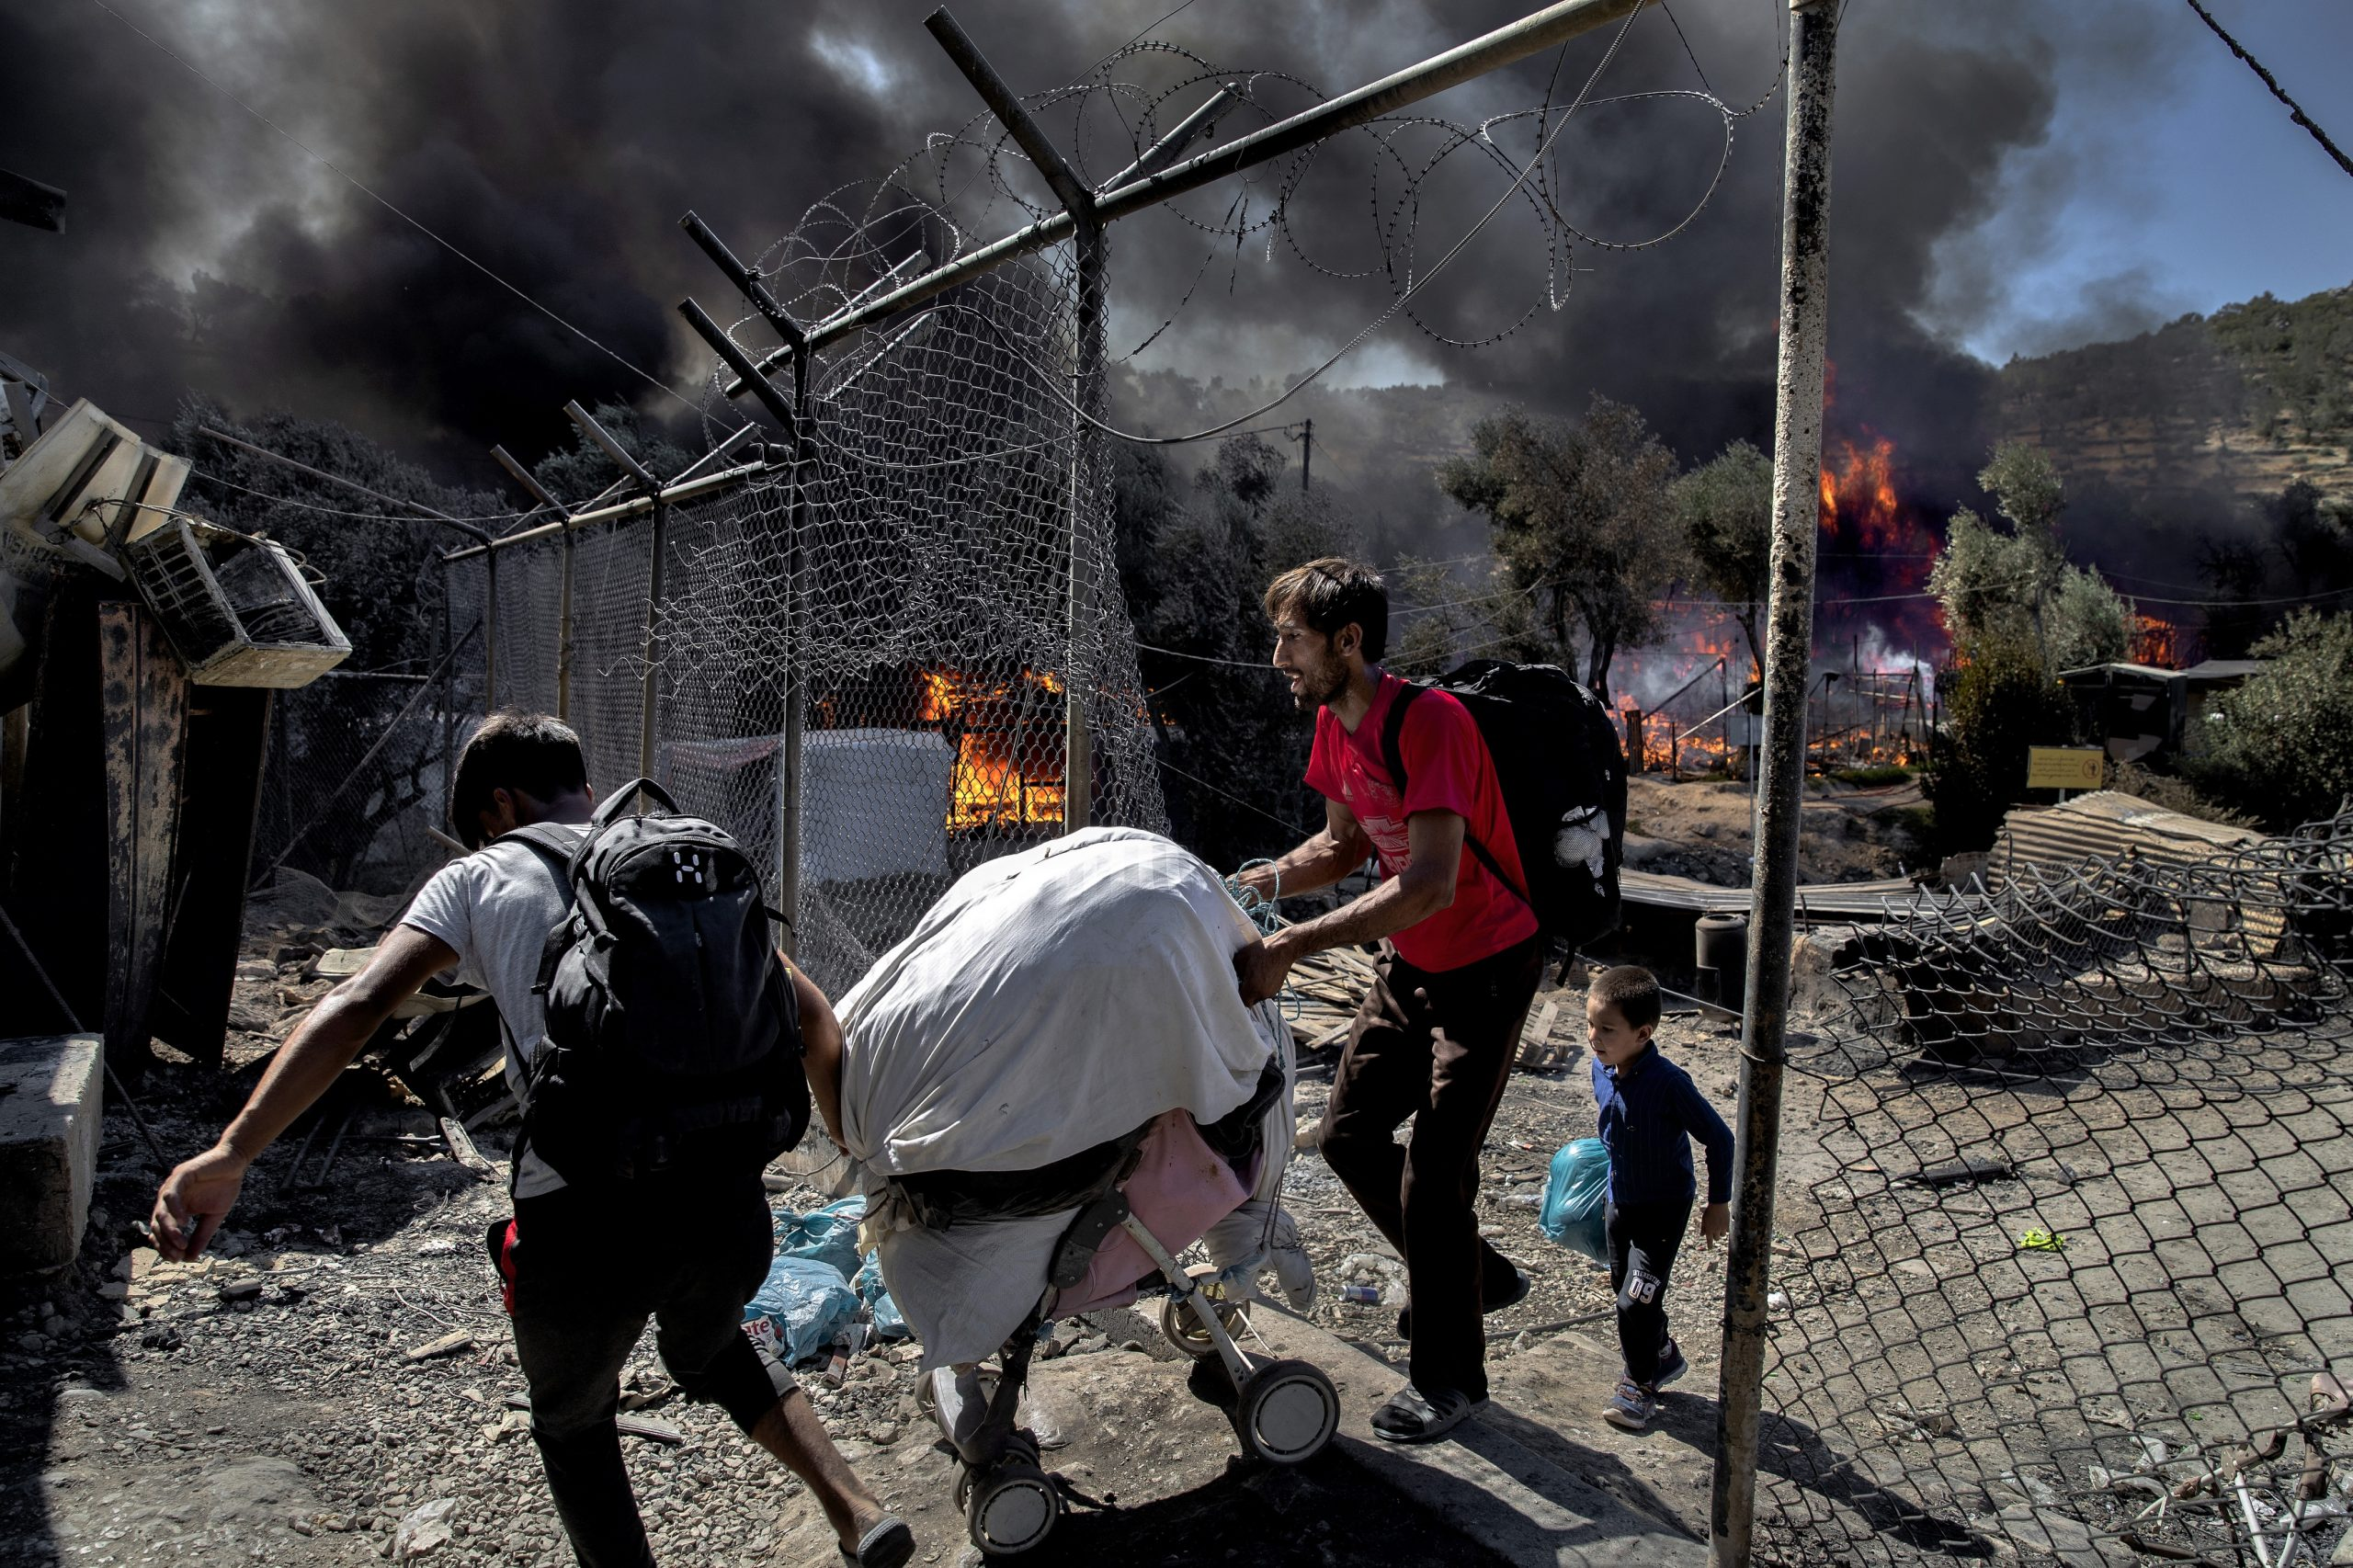 Devastating fire at Europe's largest camp for refugees and migrants